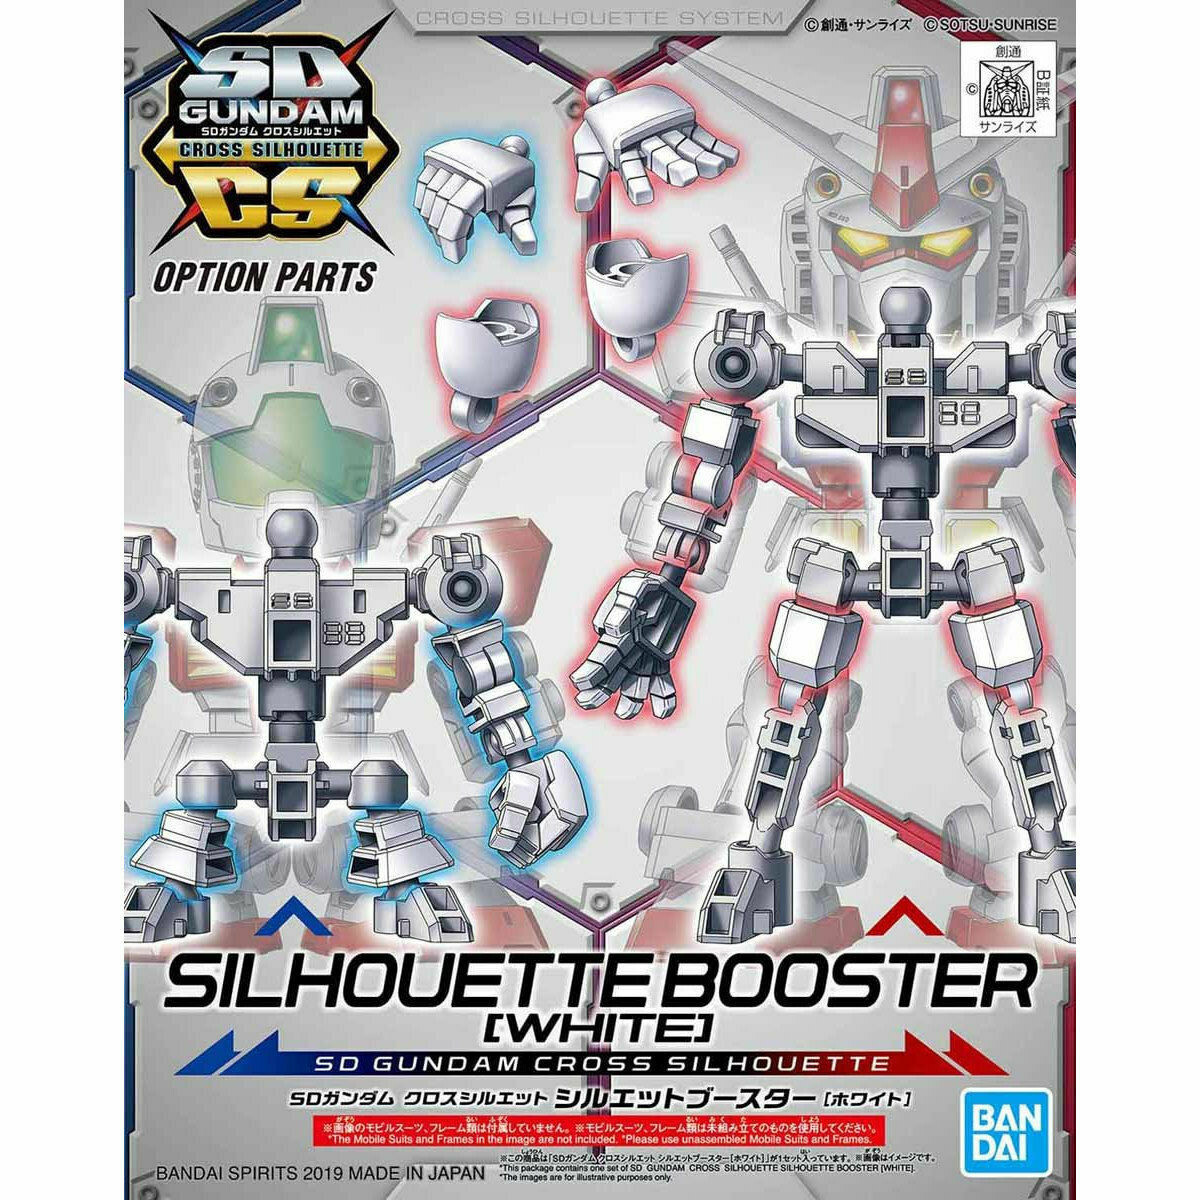 SDCS Silhouette Booster (White)